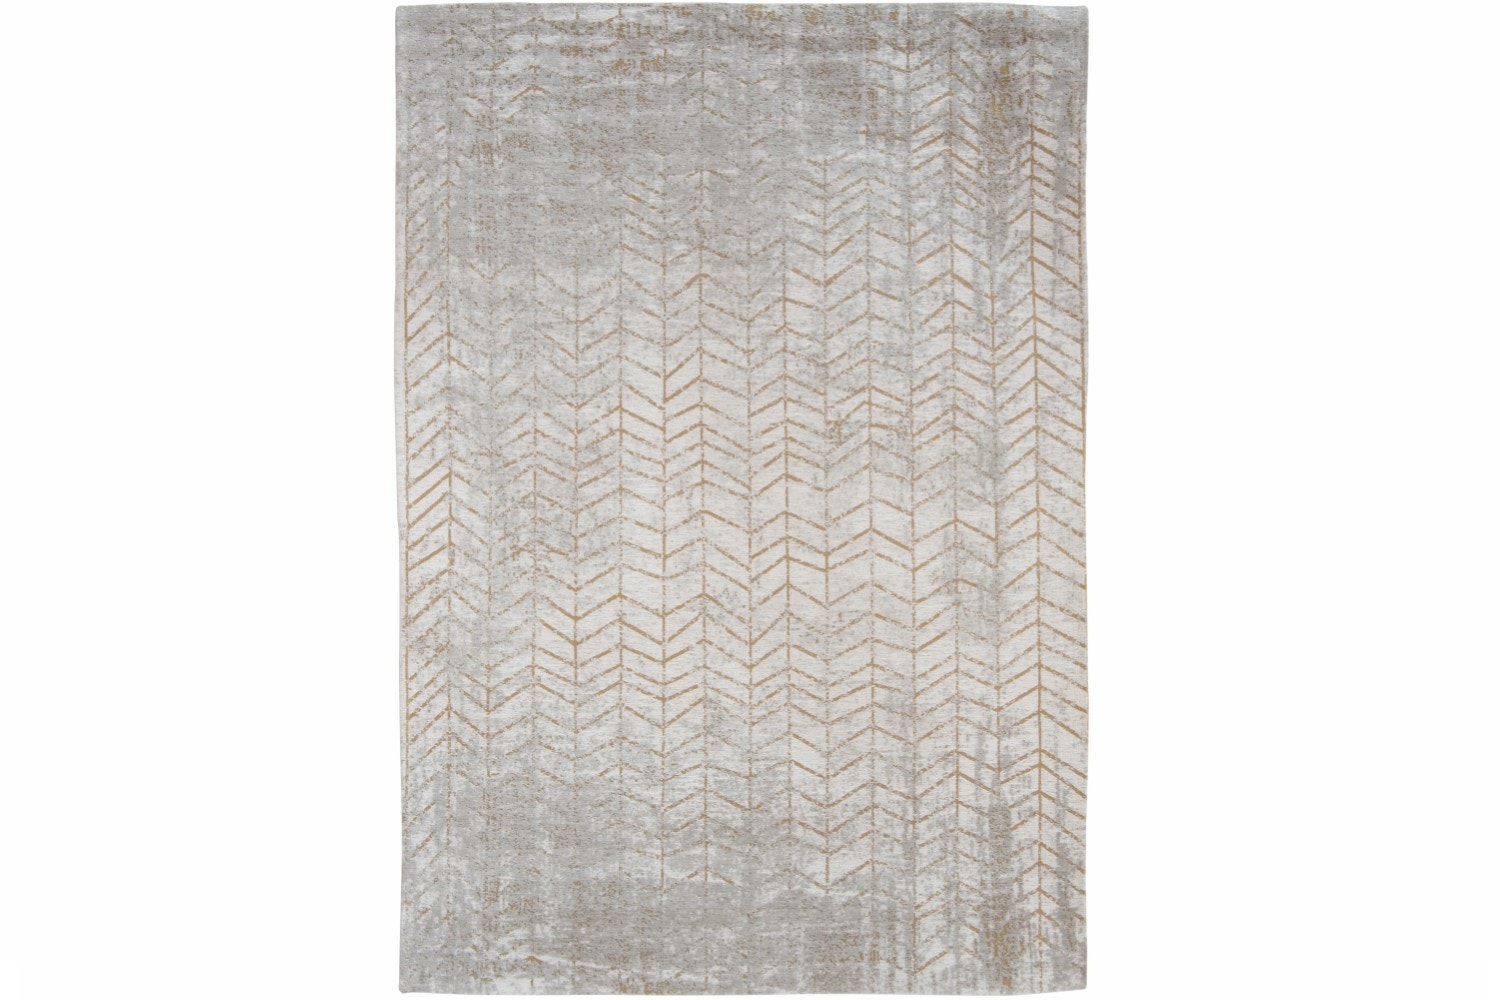 Central Yellow Rug | 170X240